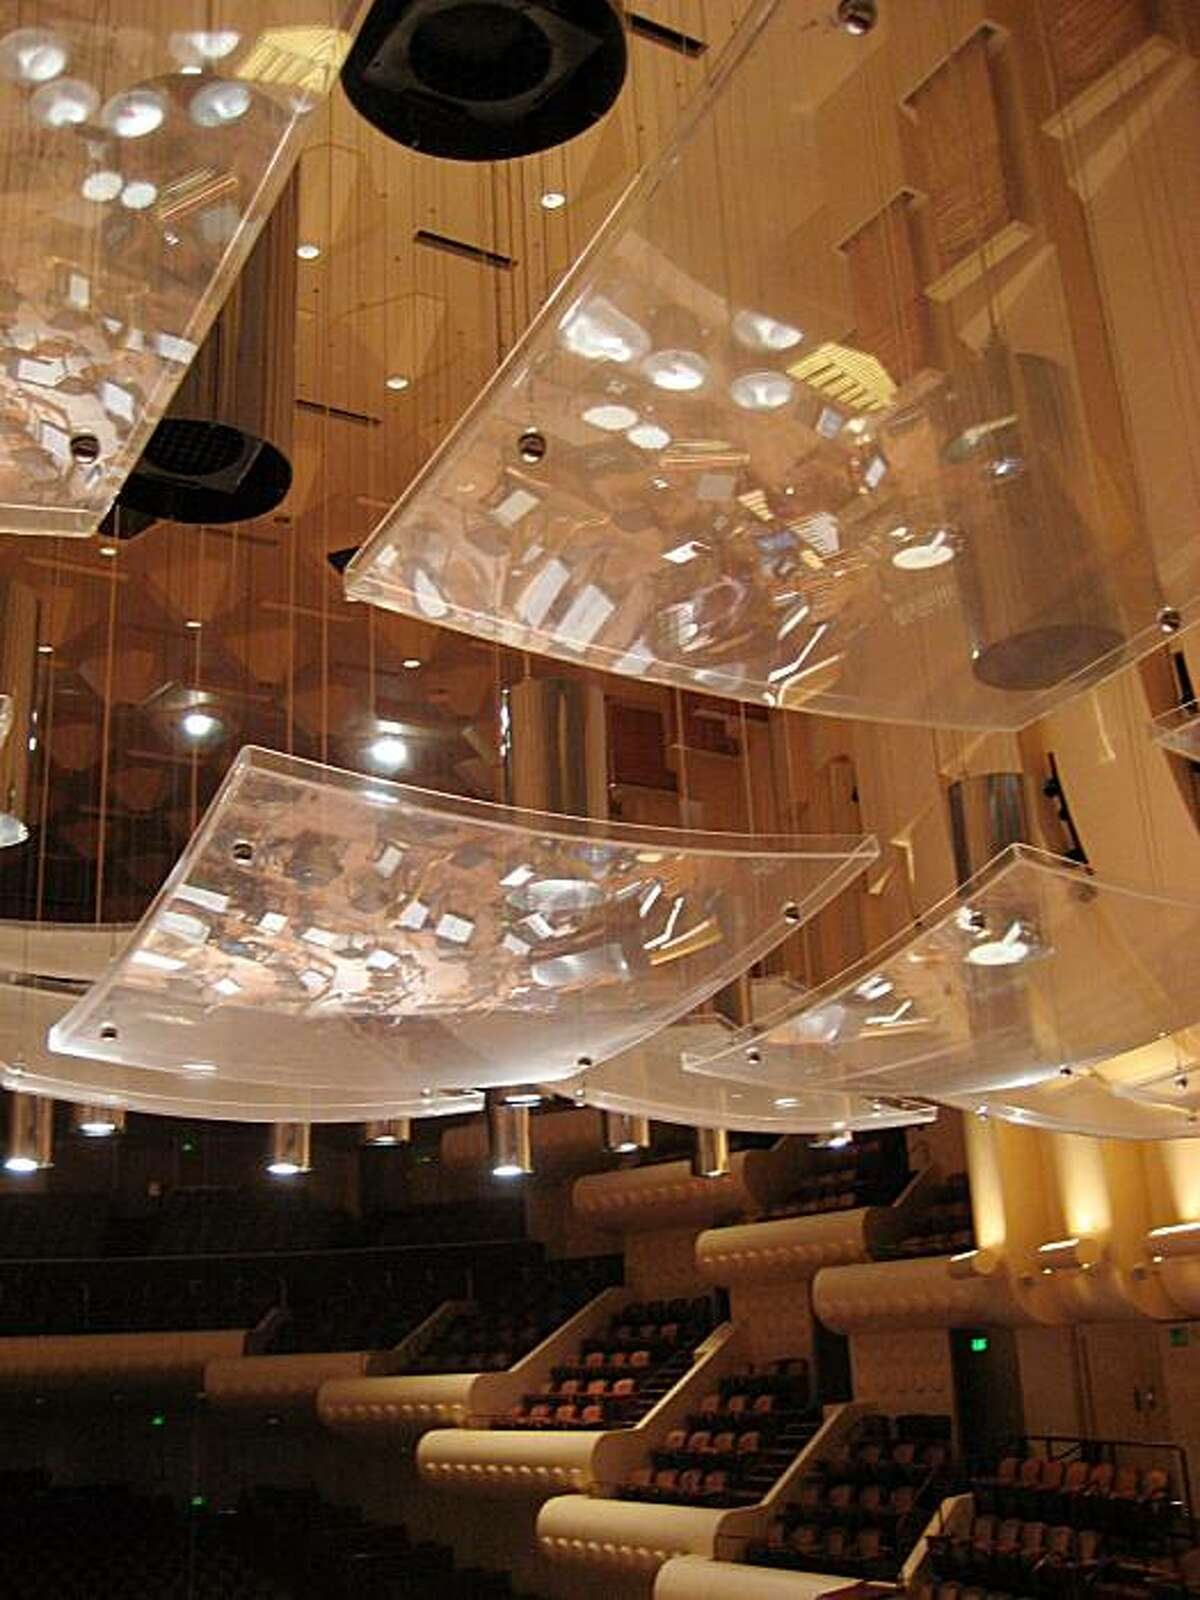 Acoustic panels in Davies Symphony Hall